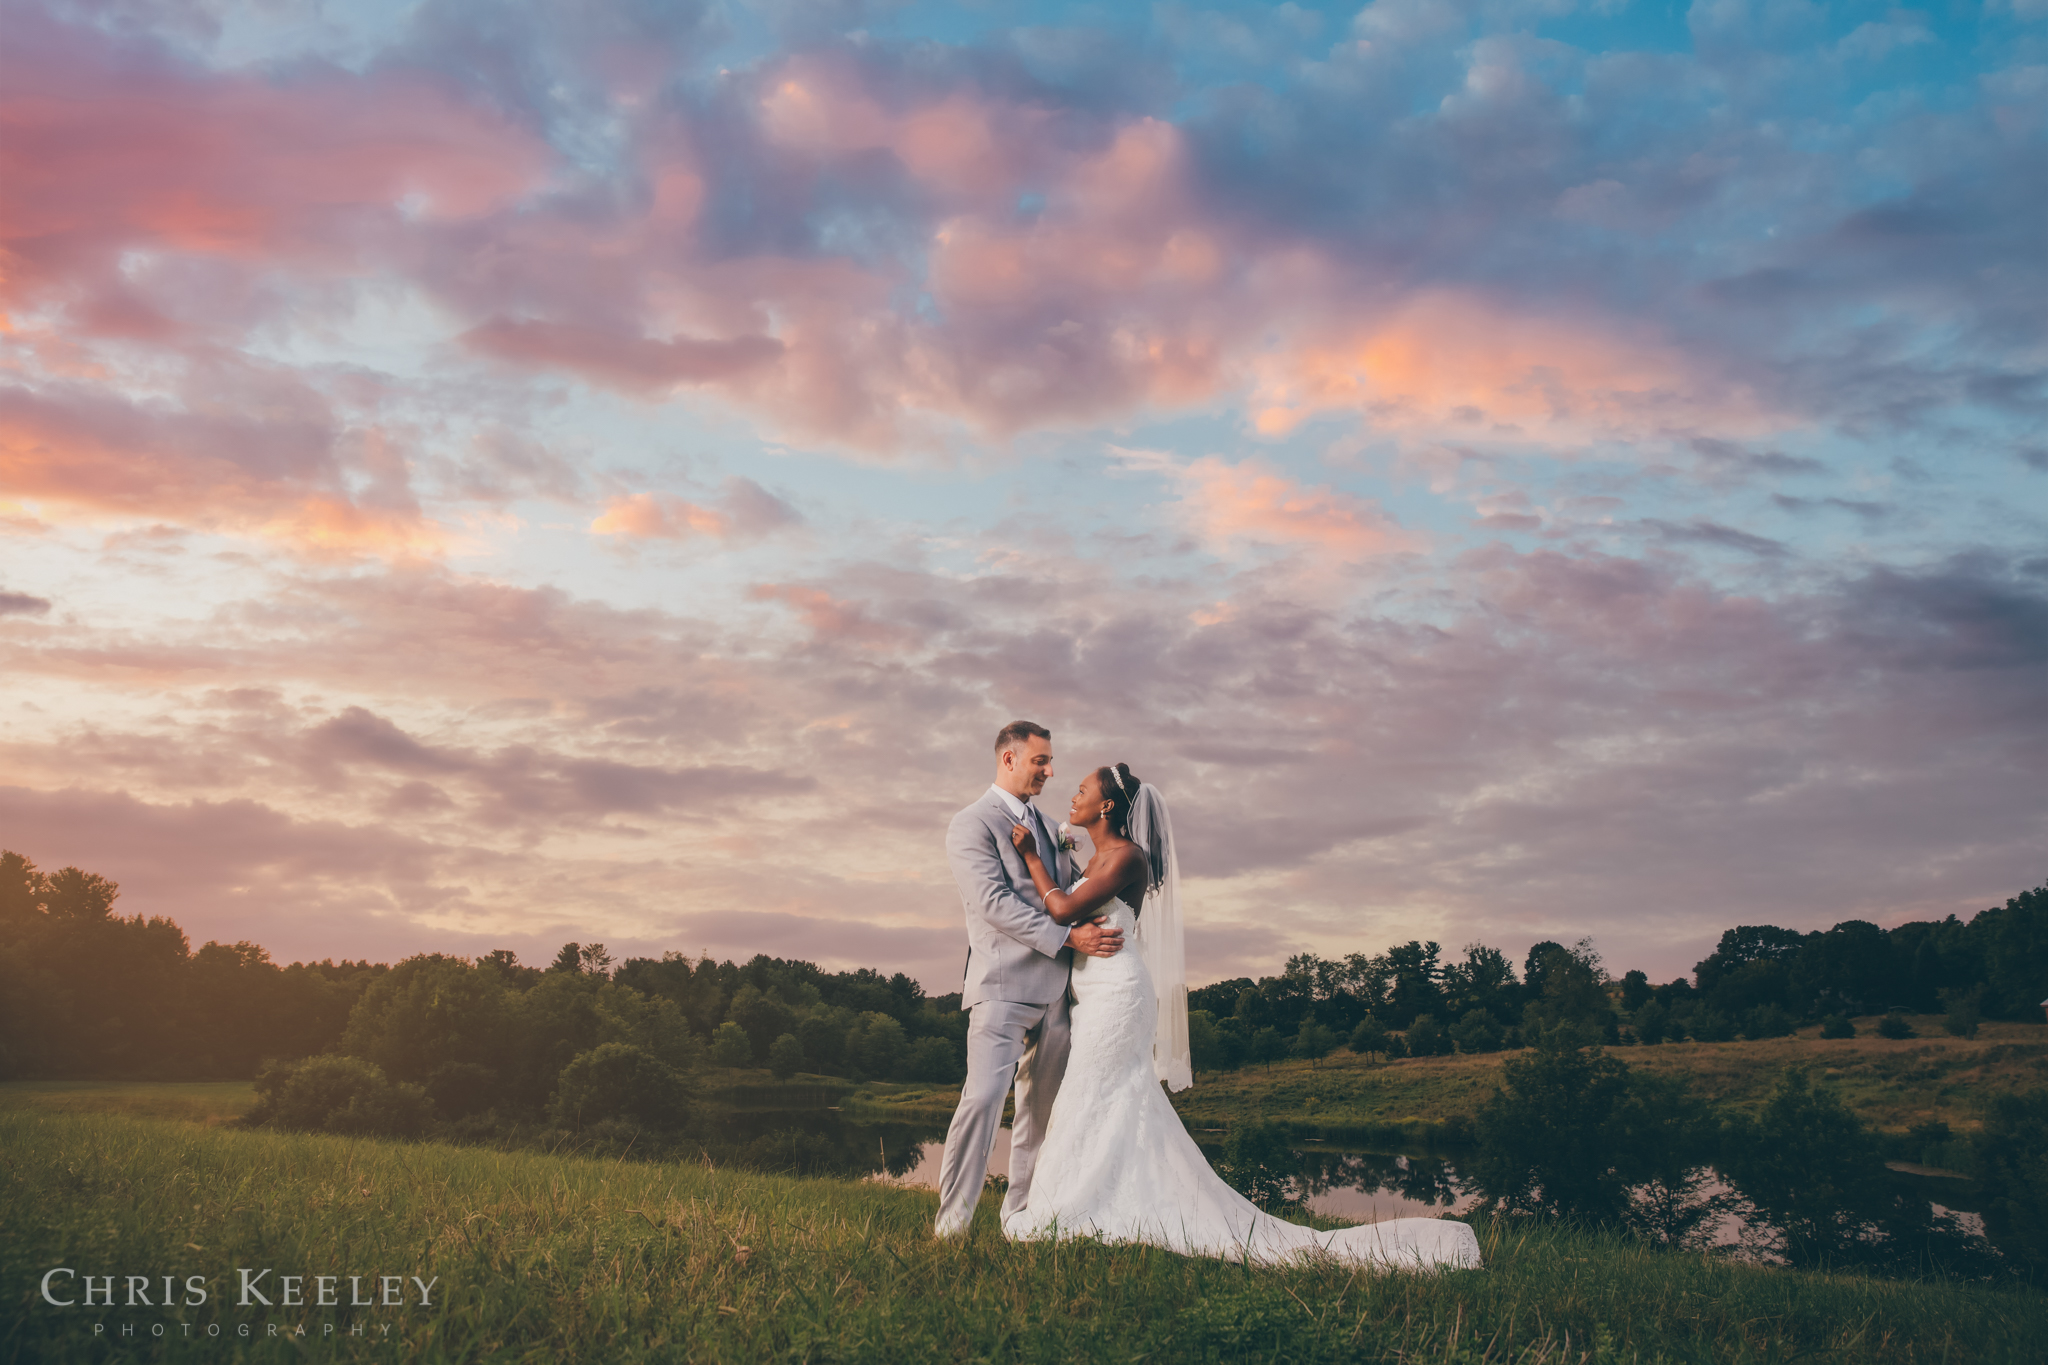 dover-new-hampshire-wedding-photographer-seacoast-chris-keeley-photography-15.jpg